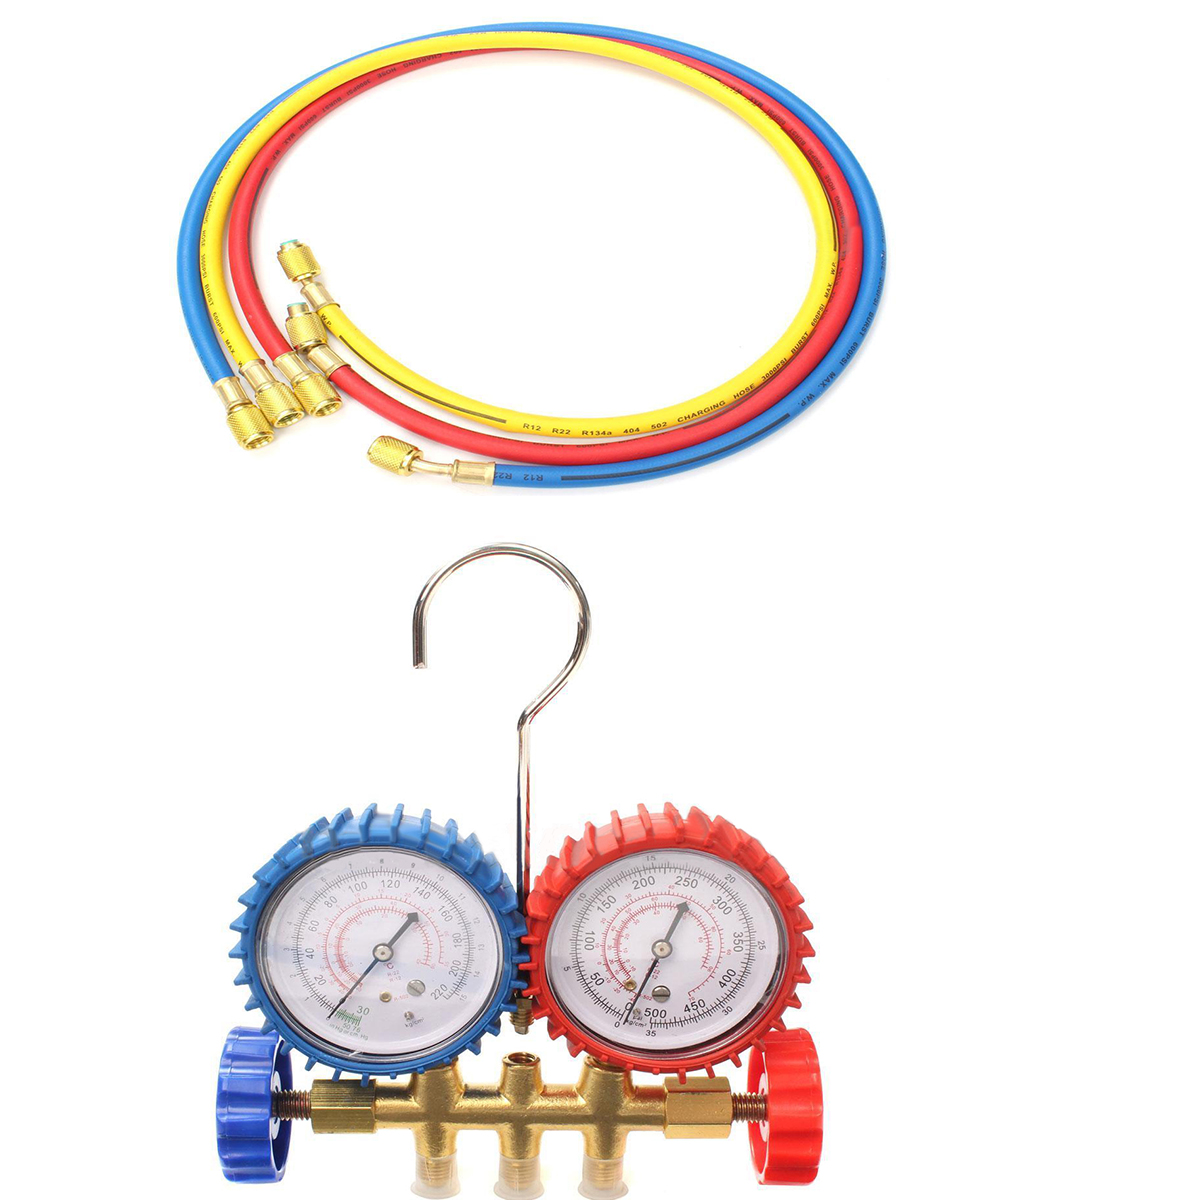 Mayitr Refrigeration Manifold Gauge Set with 85cm Charging Hose For R134A R12 R22 R404z Air Condition r22 r410 r407c r404a r134a air conditioner refrigeration single manifold vacuum gauge pressure gauge